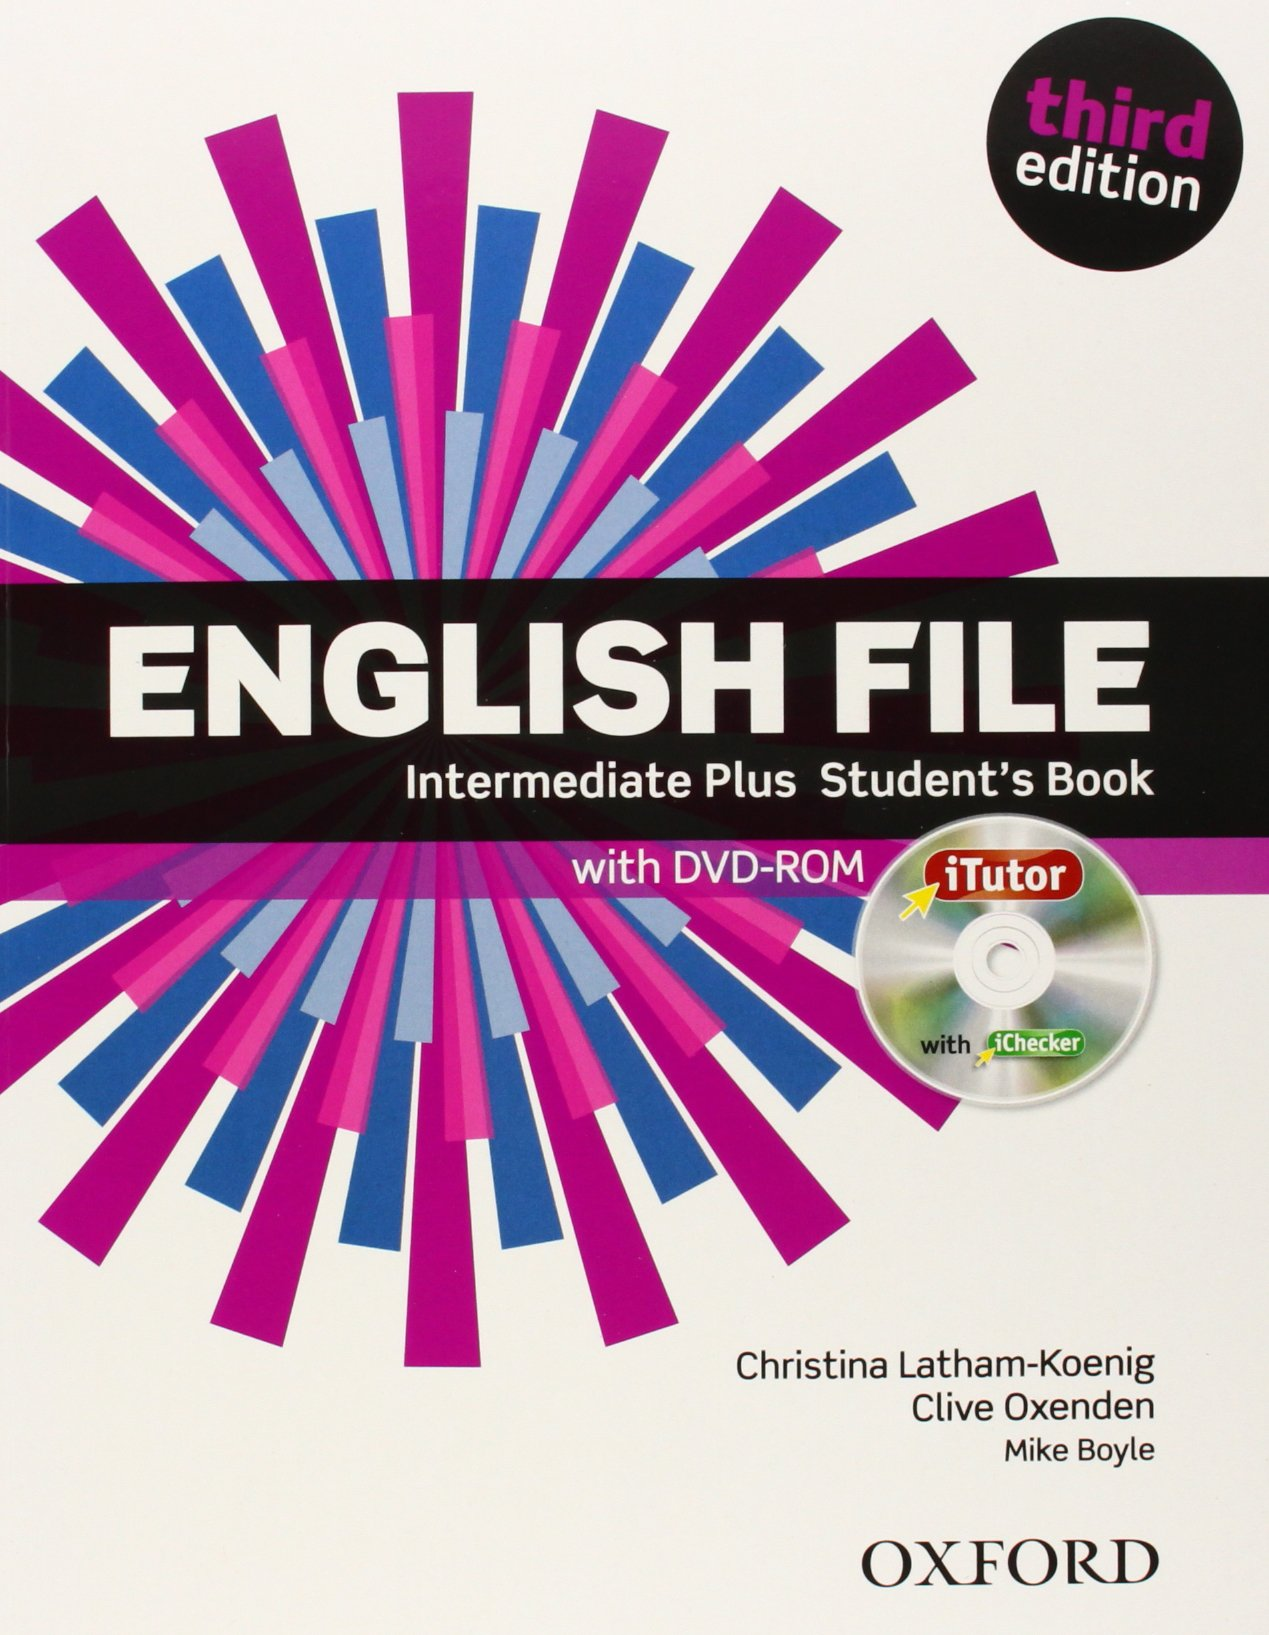 ENGLISH FILE INTERMEDIATE PLUS 3rd ED Student's Book with iTutor Pack